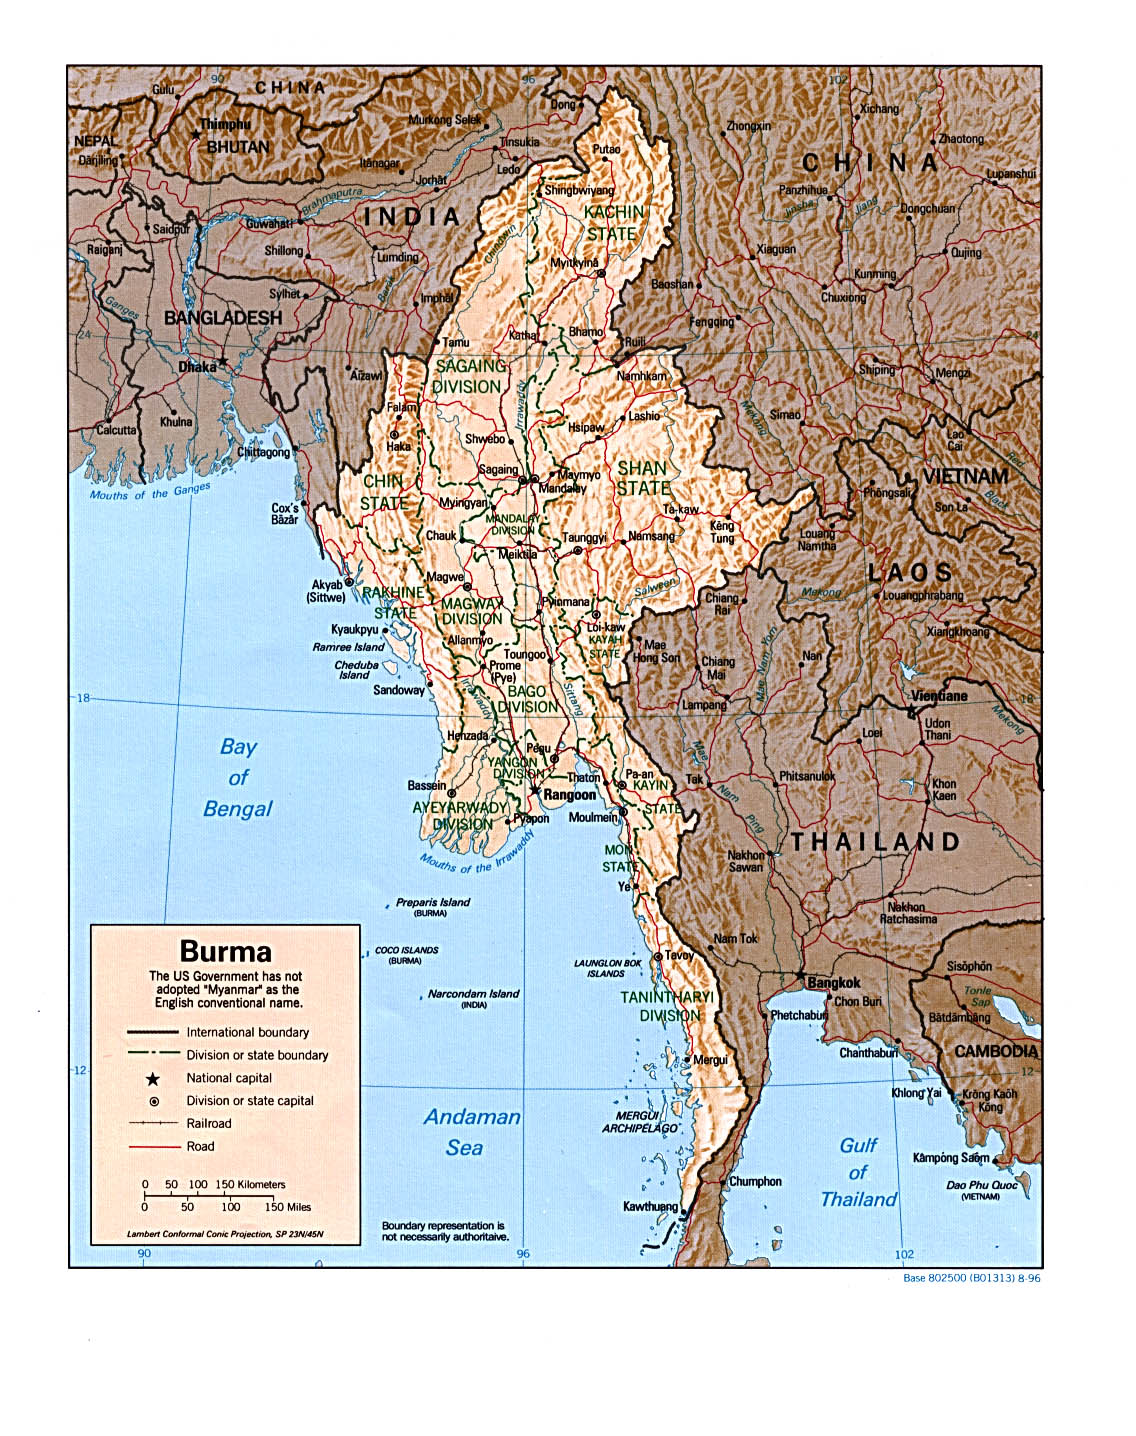 Connu Carte Birmanie (Myanmar), Carte de Birmanie (Myanmar) HP79